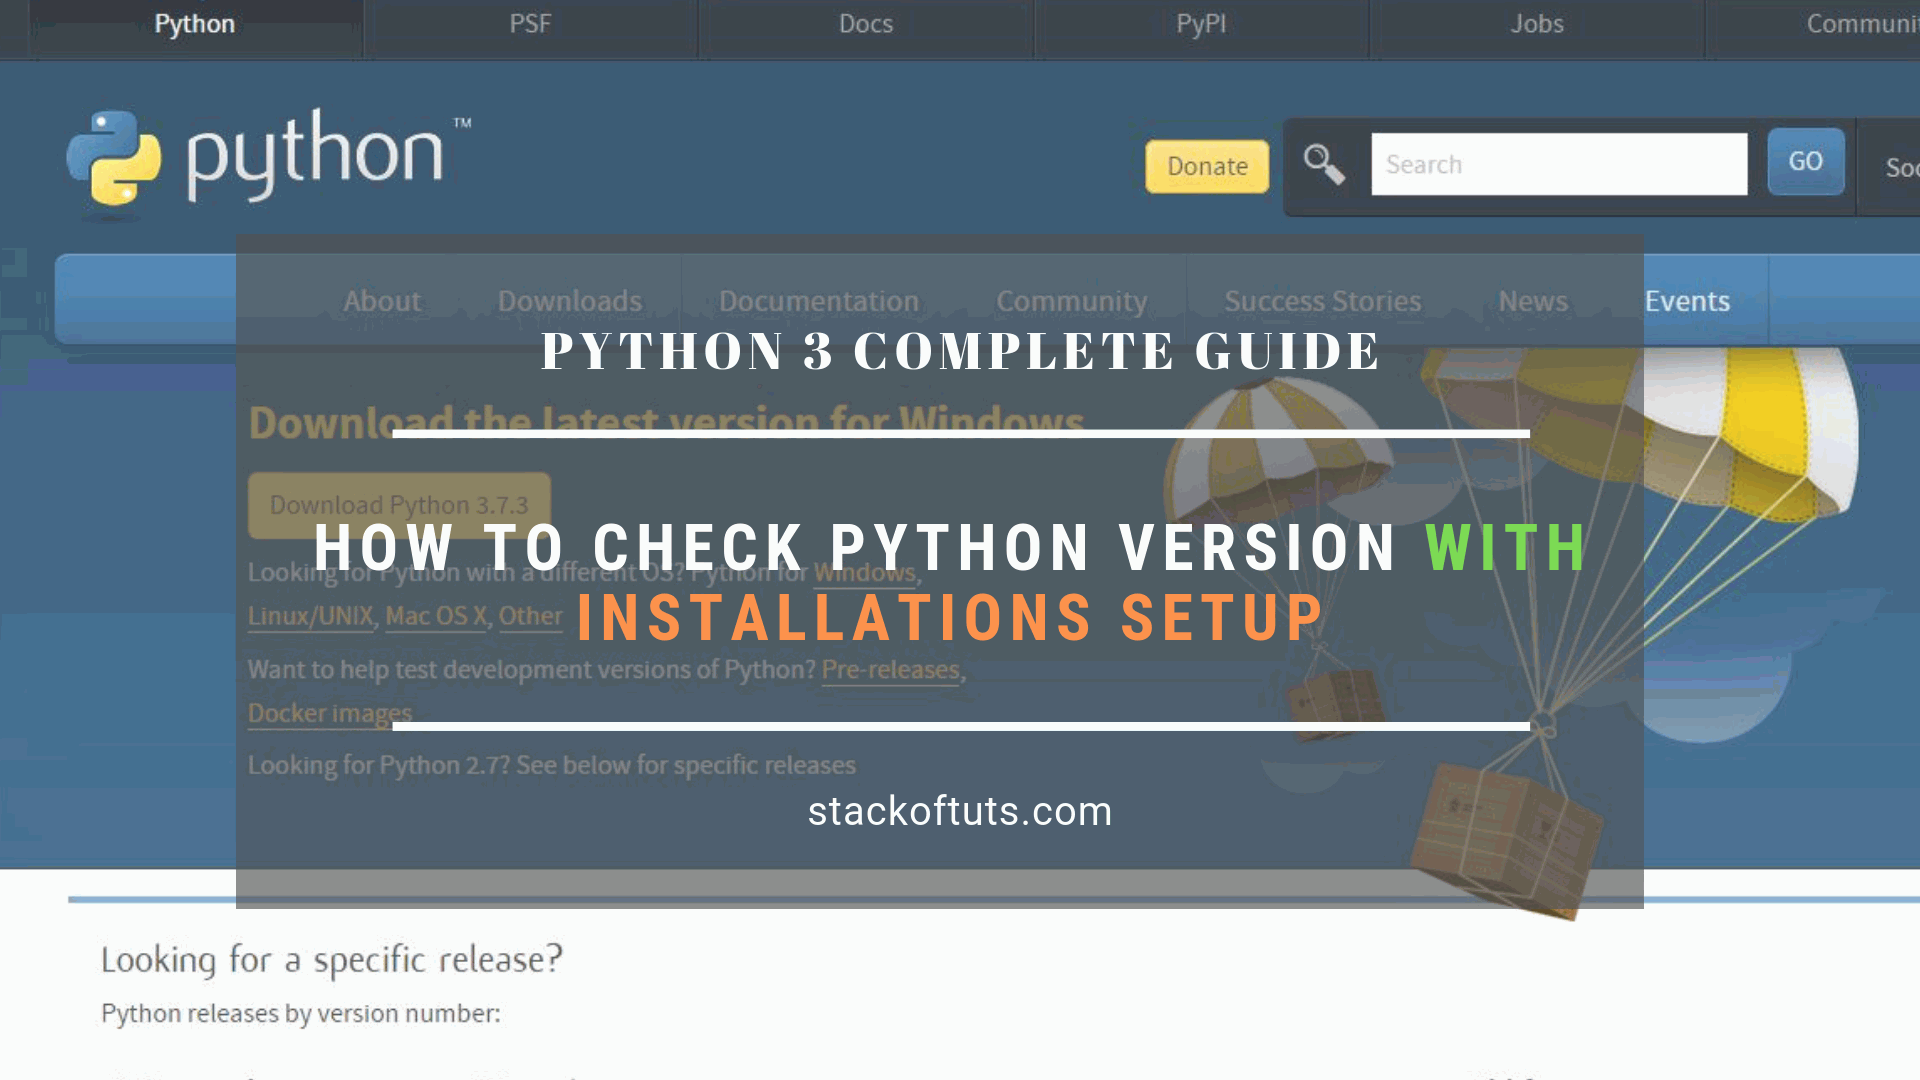 How to install python on windows Check Python version in windows 7